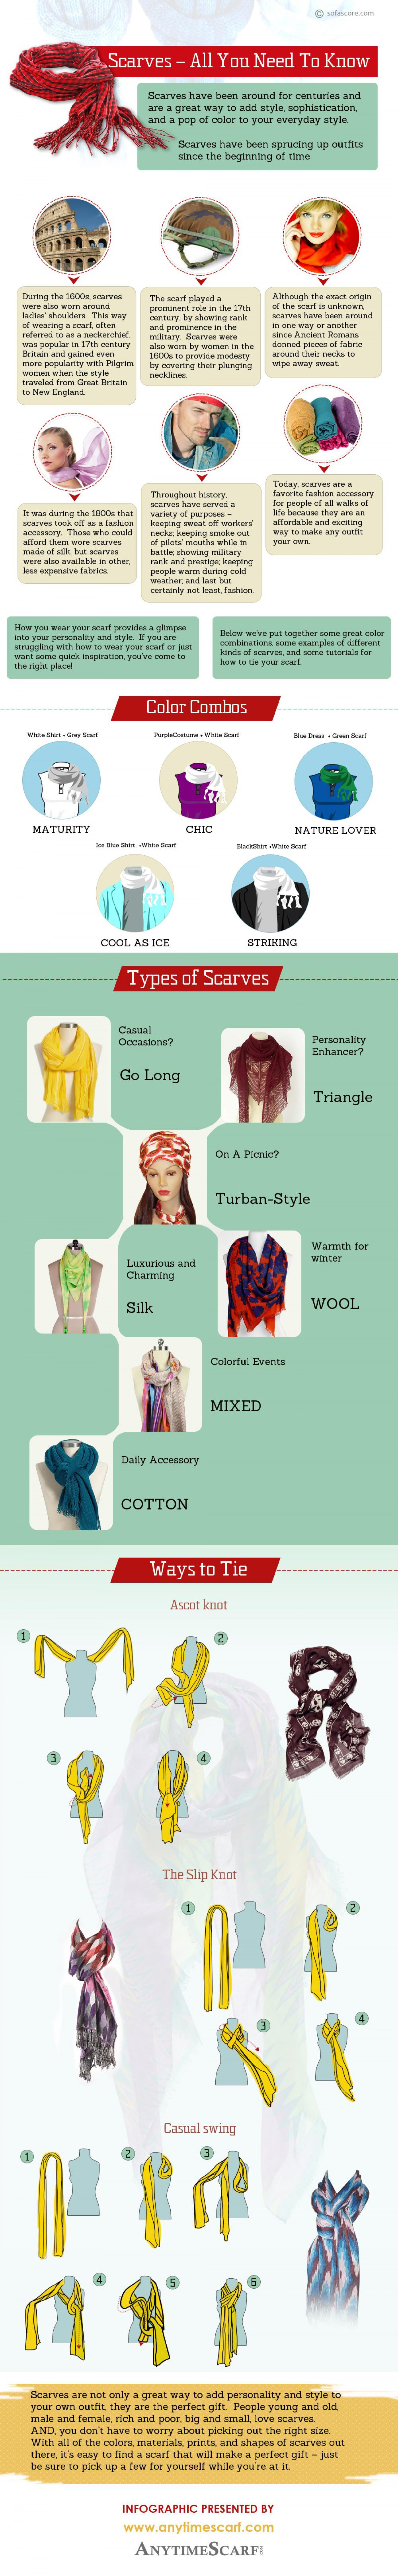 Scarves – All You Need To Know Infographic